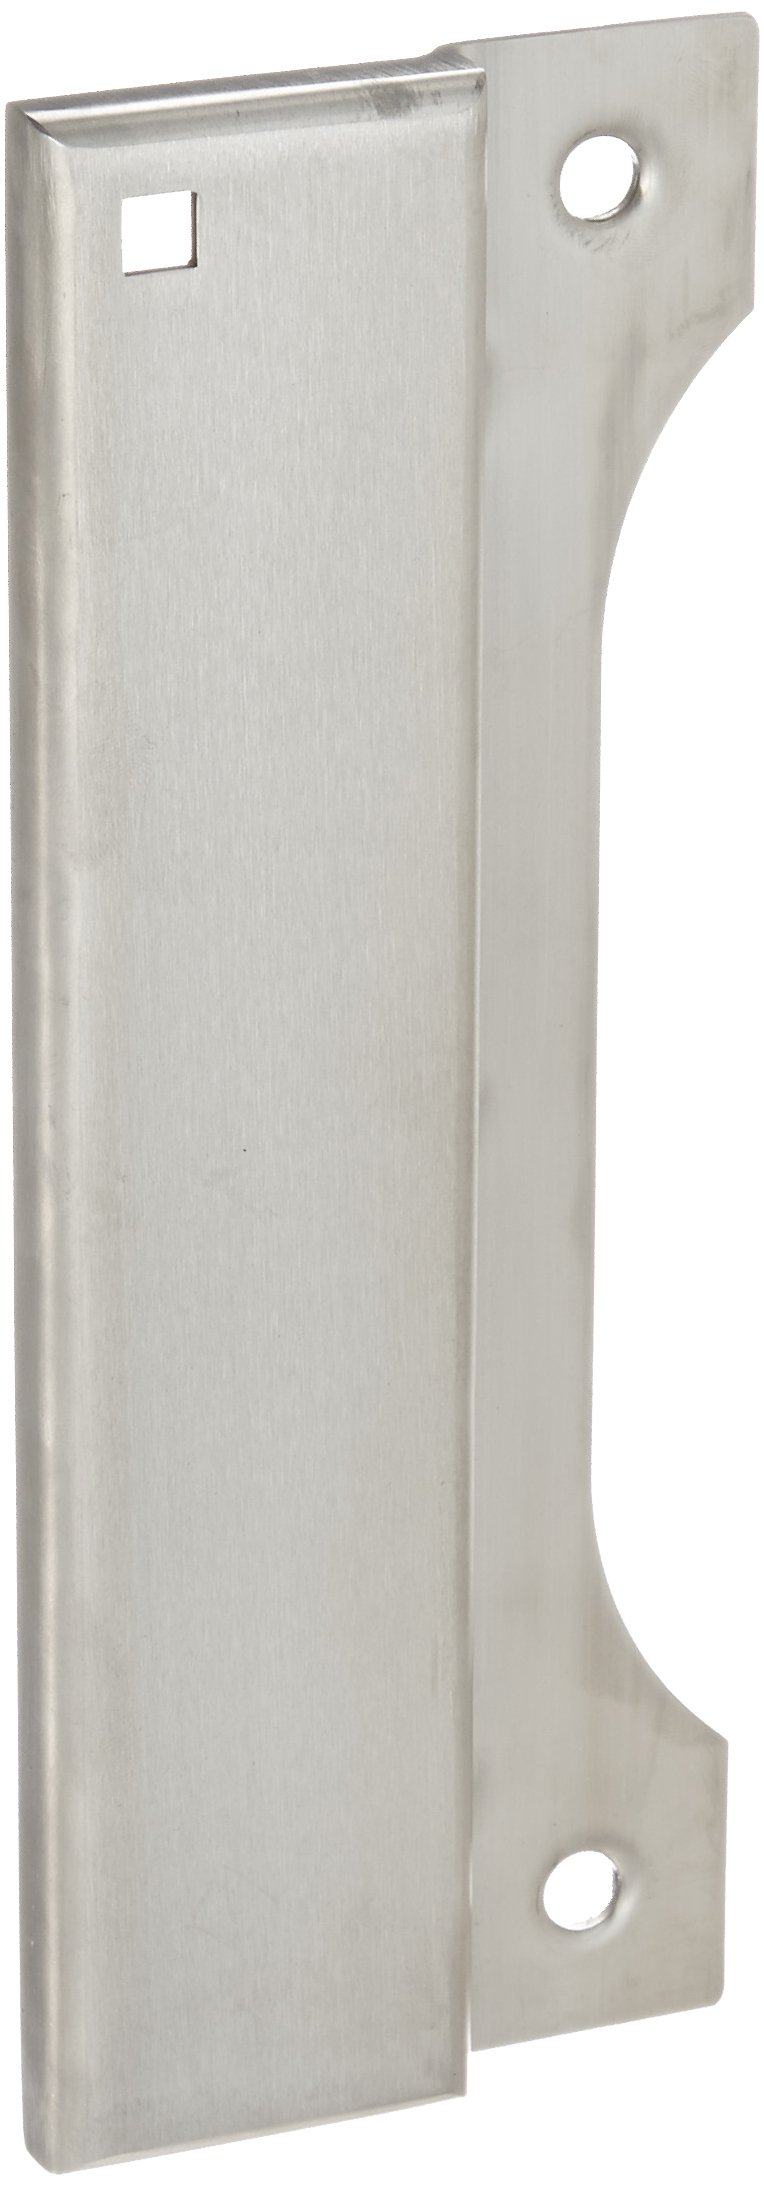 HES 150 Strike Latch Guard, Stainless steel